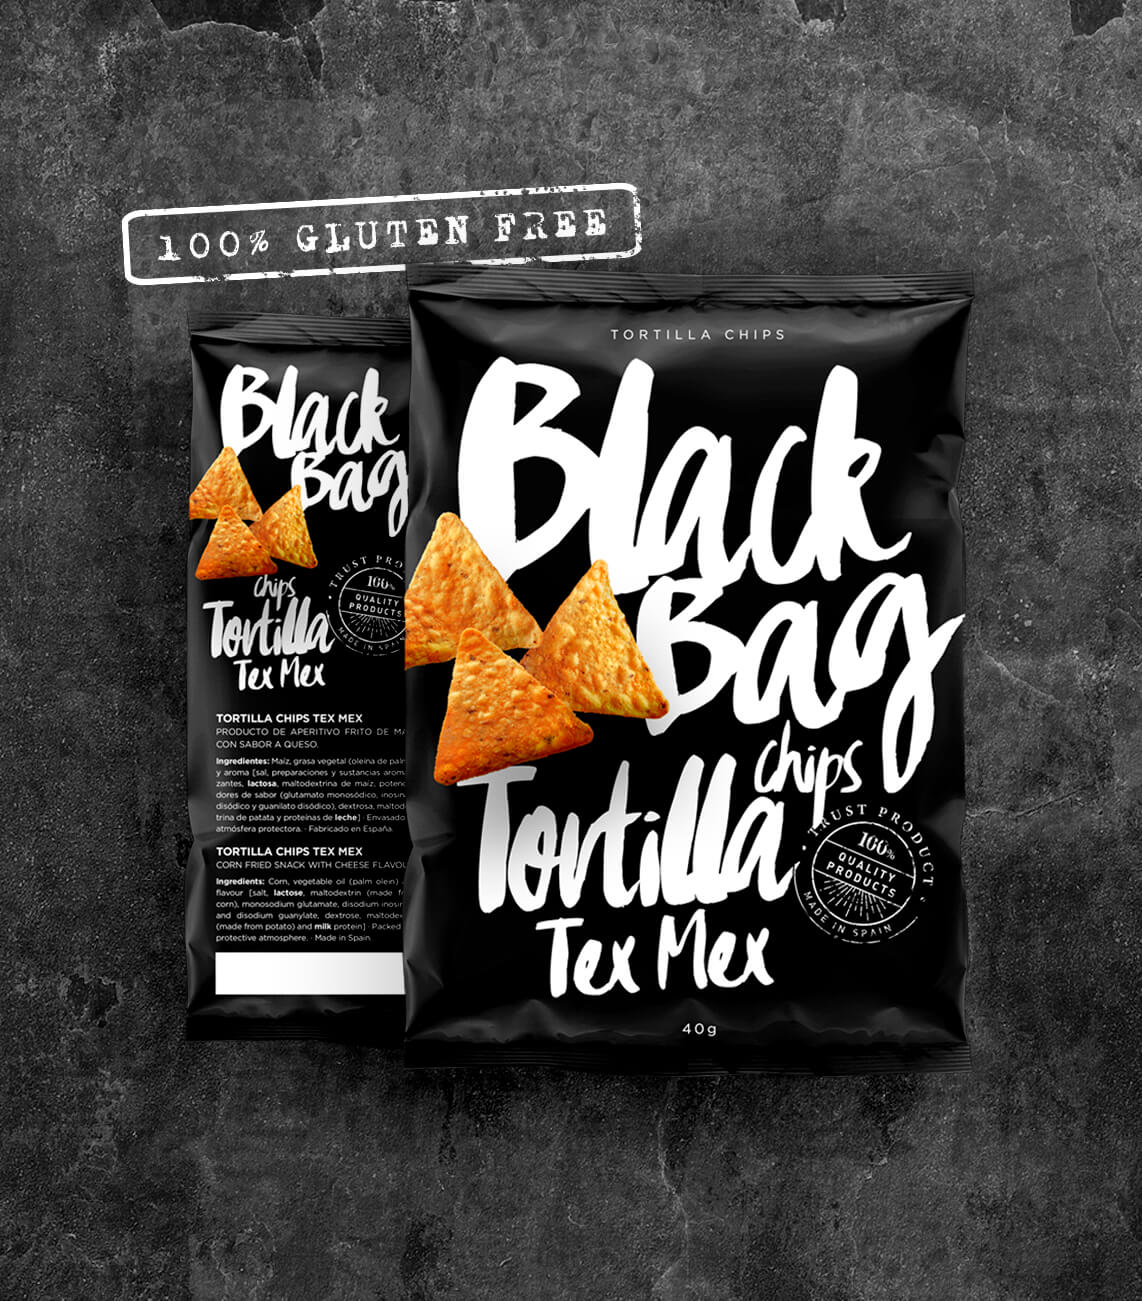 bolsa-de-patatas-chips-tortilla-dippas-black-bag